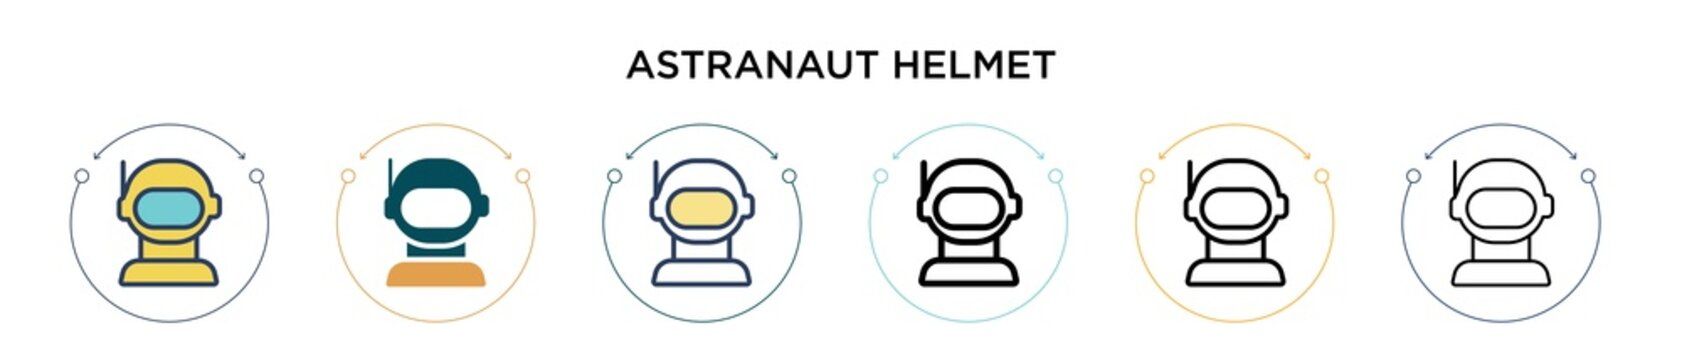 Astranaut helmet icon in filled, thin line, outline and stroke style. Vector illustration of two colored and black astranaut helmet vector icons designs can be used for mobile, ui, web